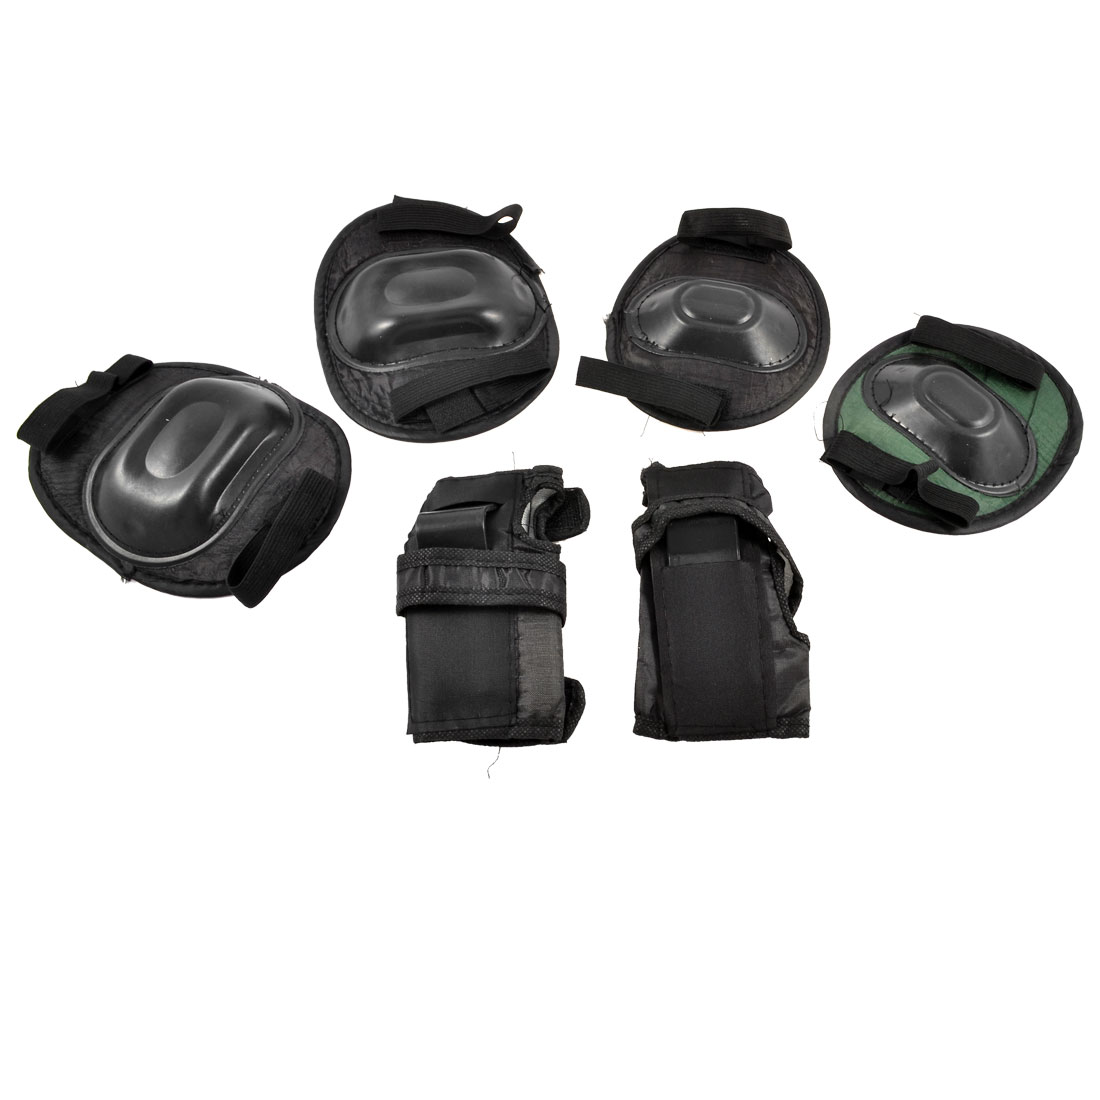 Sports Protector Knee Elbow Palm Pads Black 3 Sets